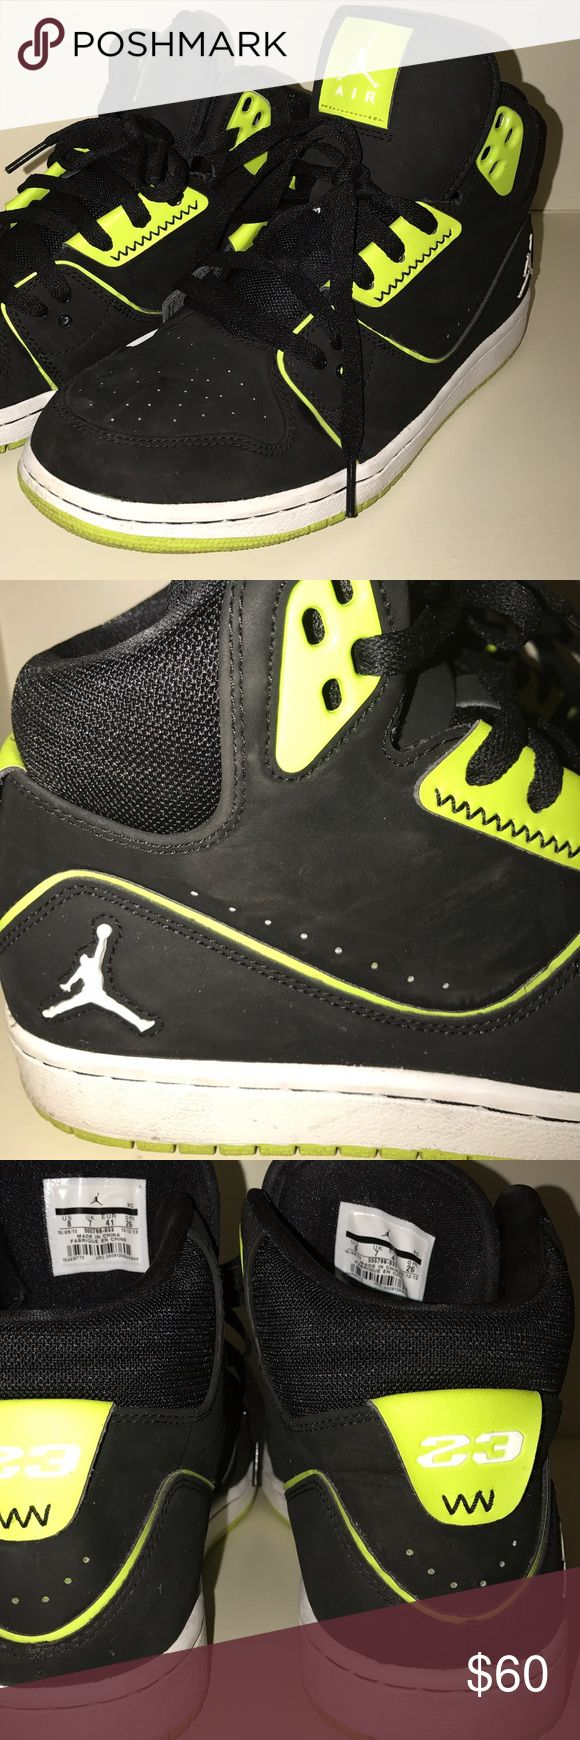 Nike Air Jordan Neon Shoes! Only worn once! In perfect condition, neon yellow and black Nike Air Jordans! Killer shoes. Super comfortable. Jordan Shoes Sneakers